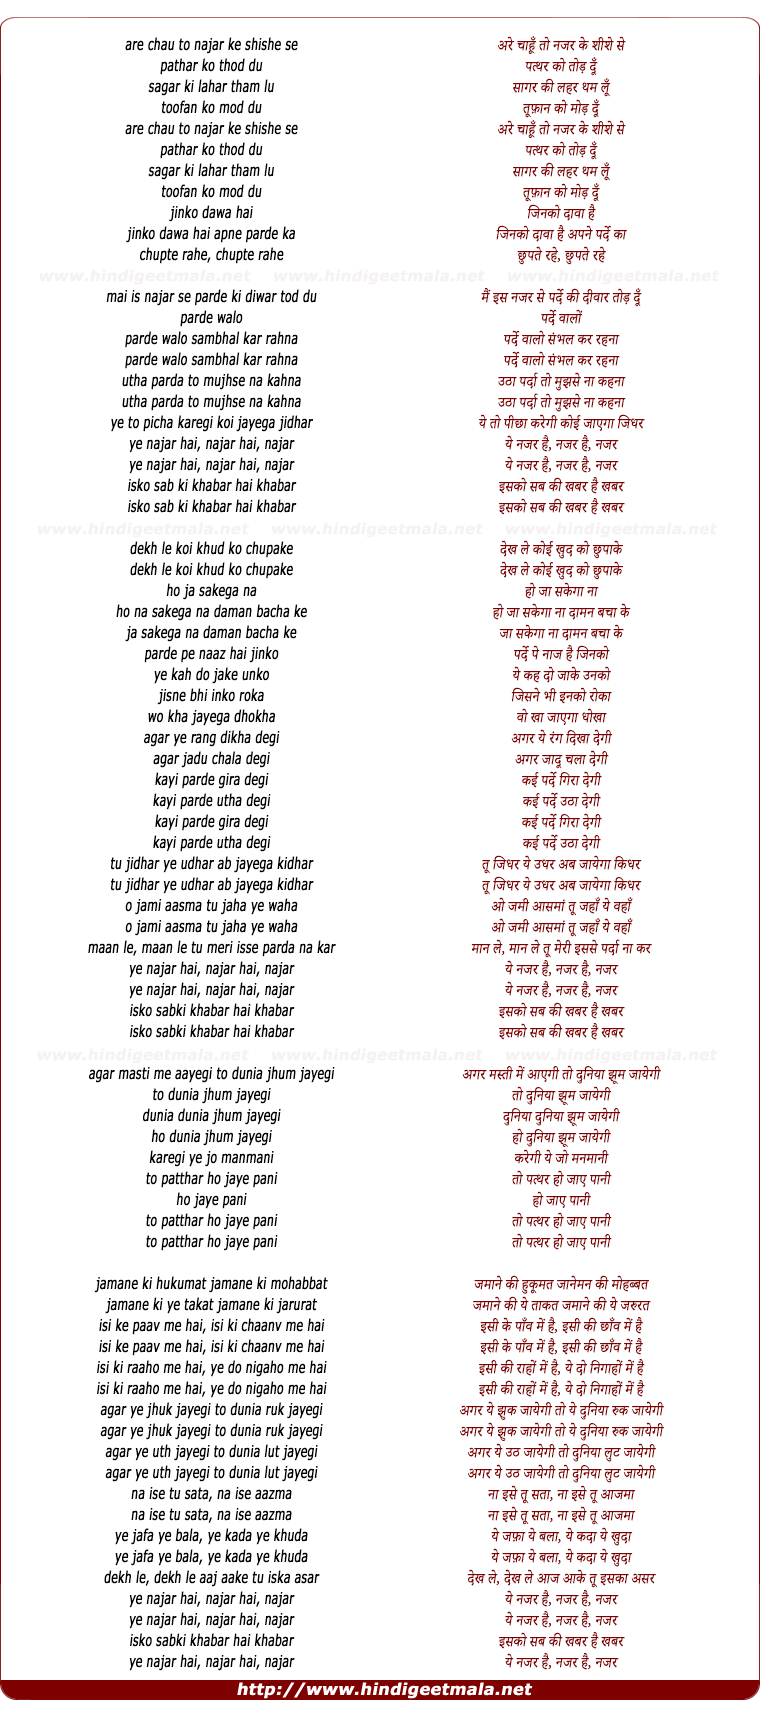 lyrics of song Ye Najar Hai Najar Hai Najar